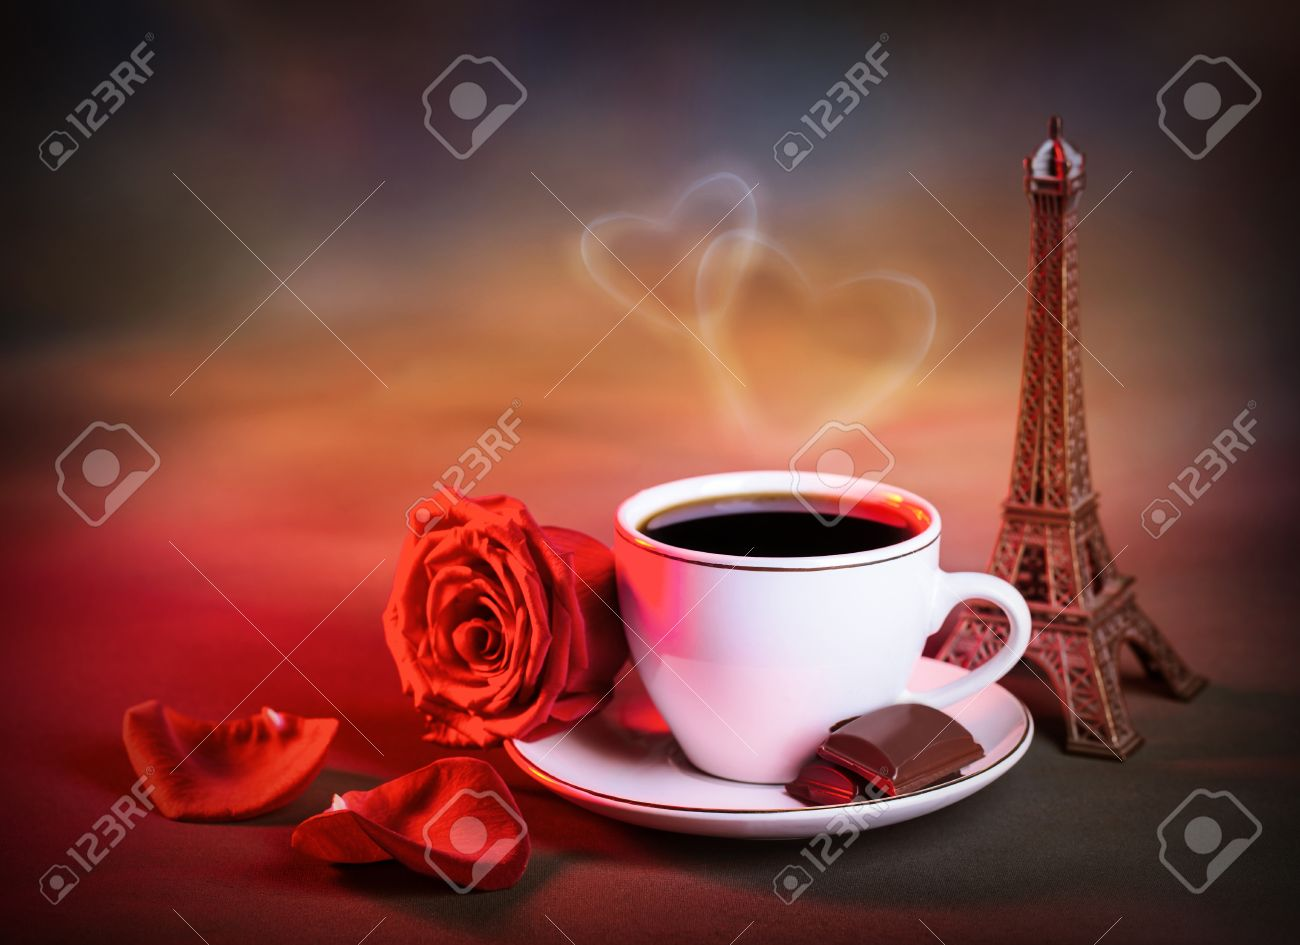 Picture Of White Cup With Morning Tea In Valentine Day, Grunge Background,  Red Fresh